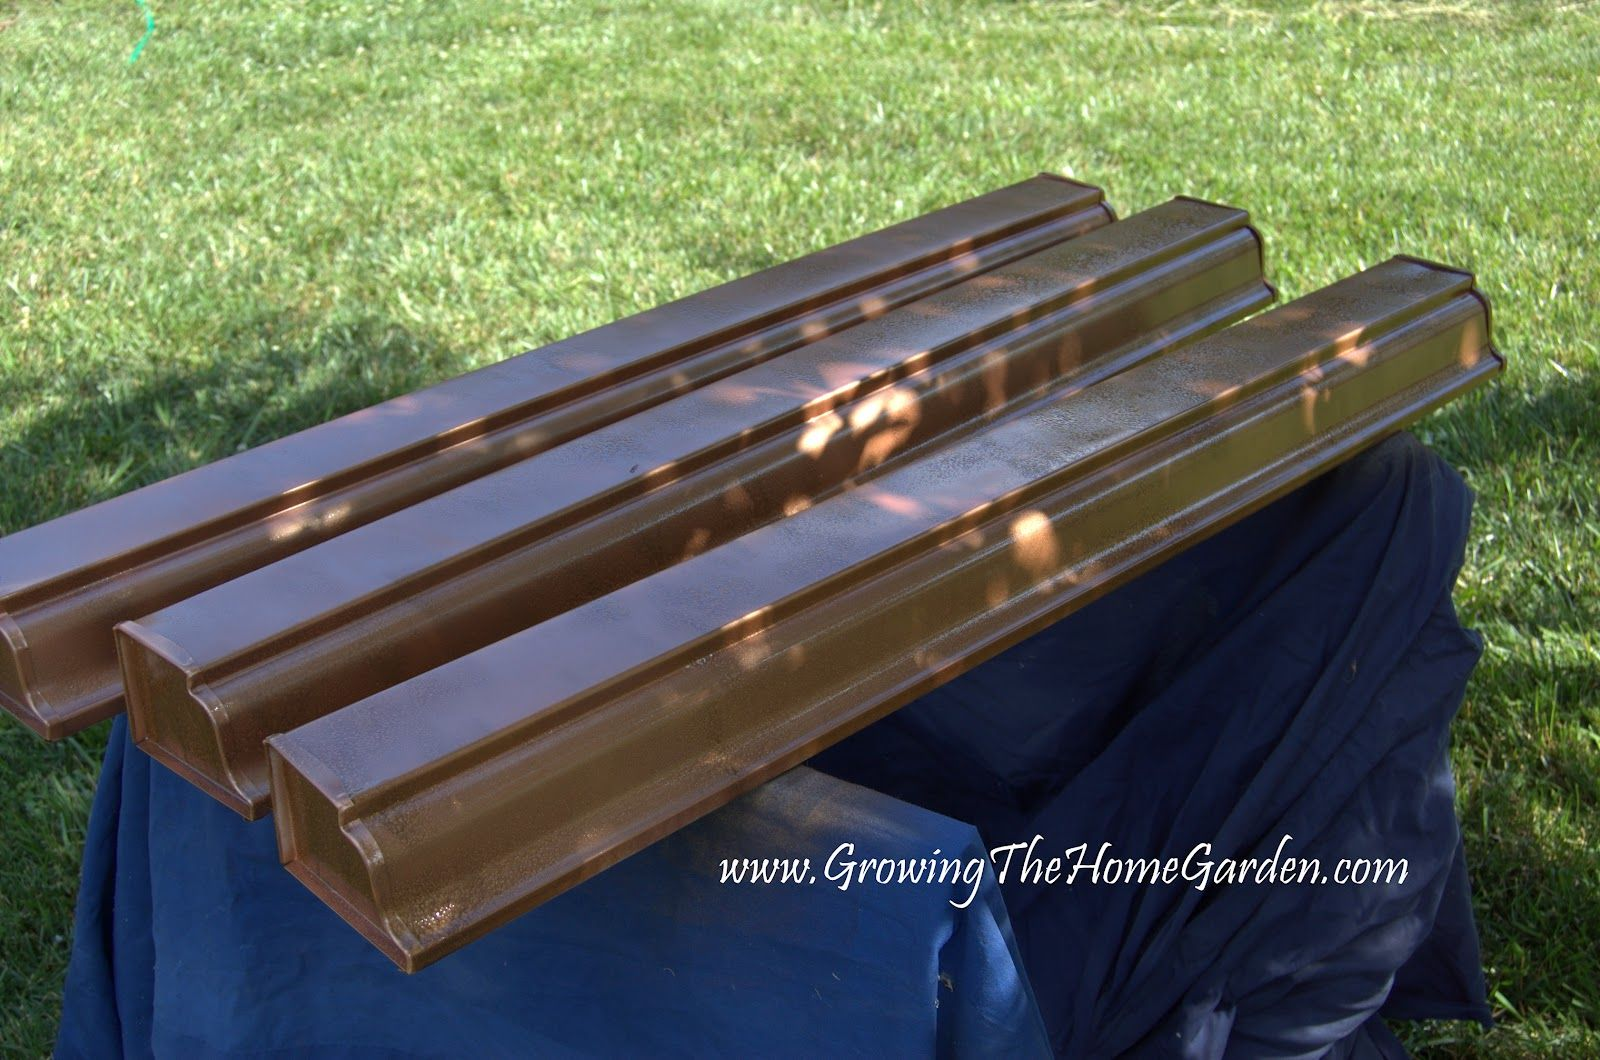 Painted To Look Like Copper Gutters Gutters Vertical Garden Downspout